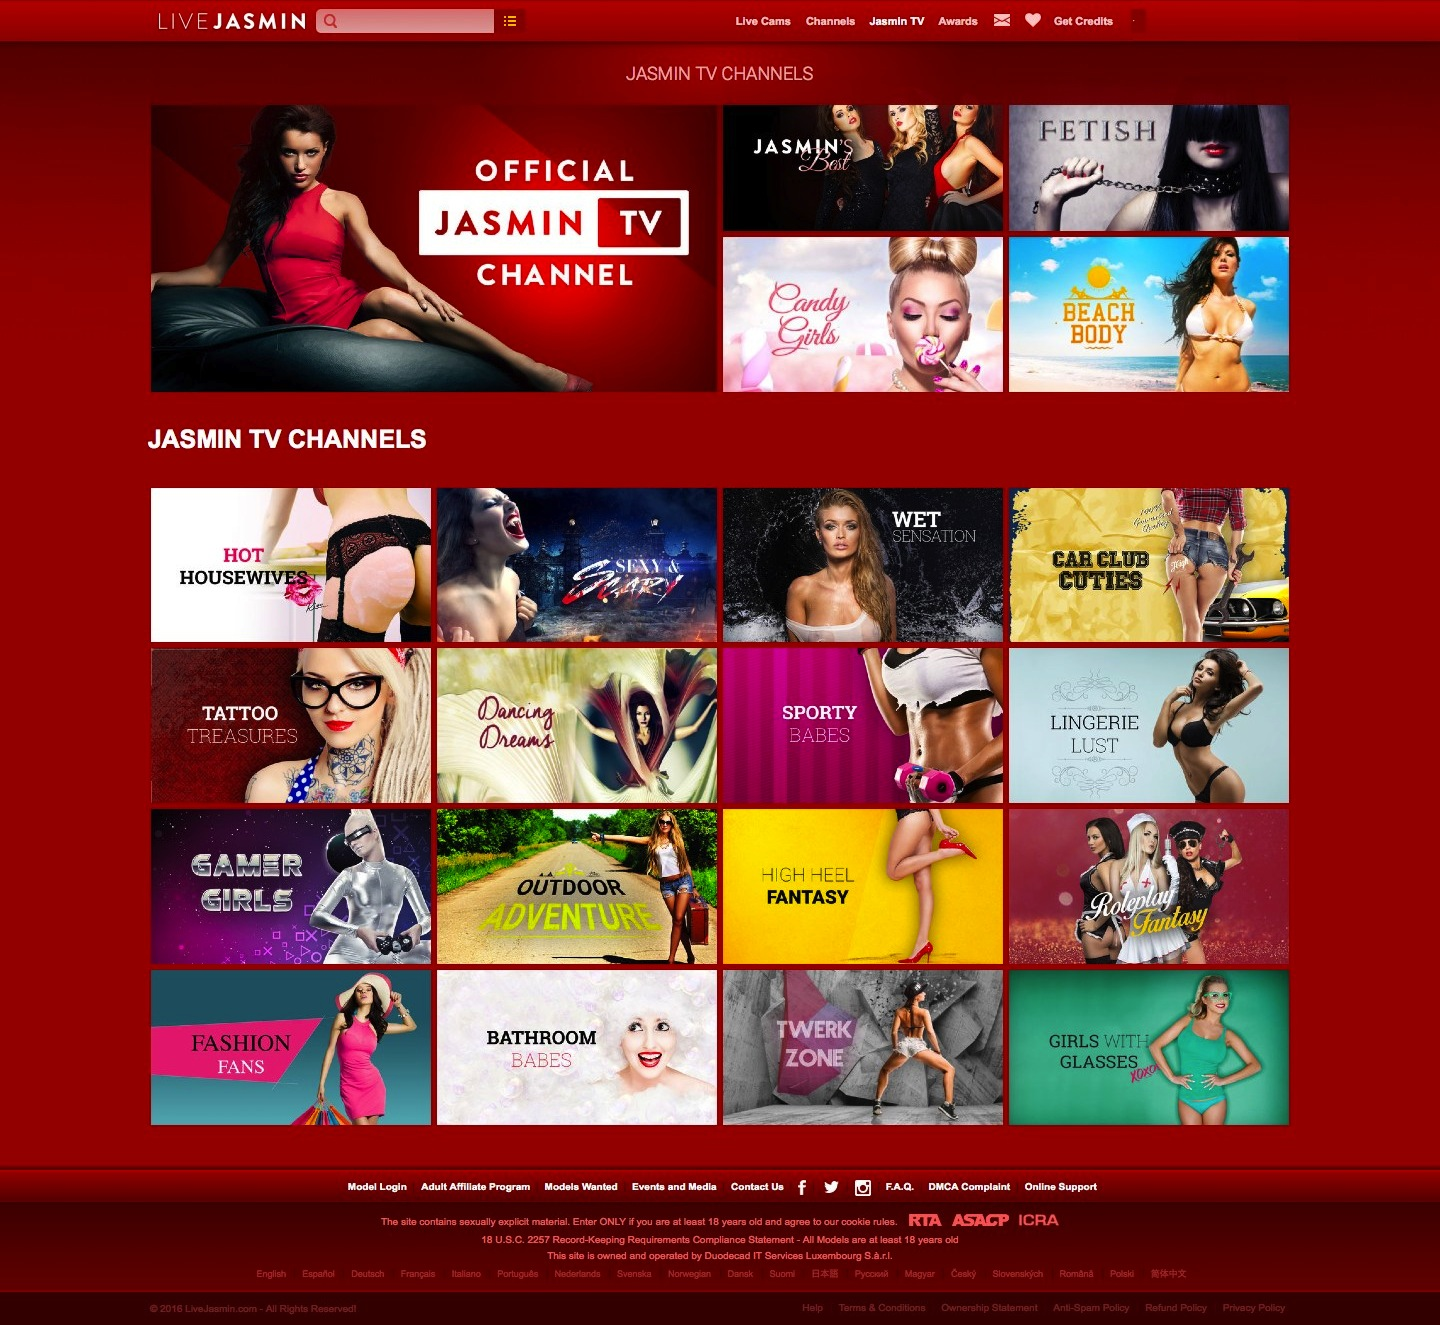 Live Jasmin channels